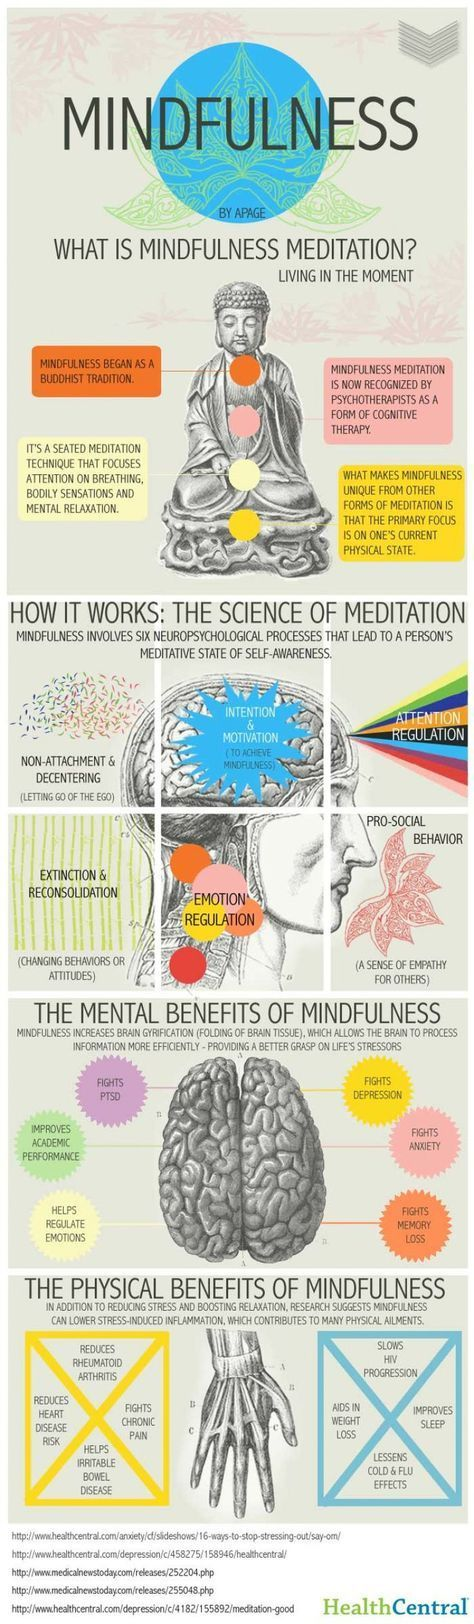 Meditation For Beginners Youtube VideoClick the link now to find the center in you with our amazing selections of items ranging from yoga apparel to meditation space decor!